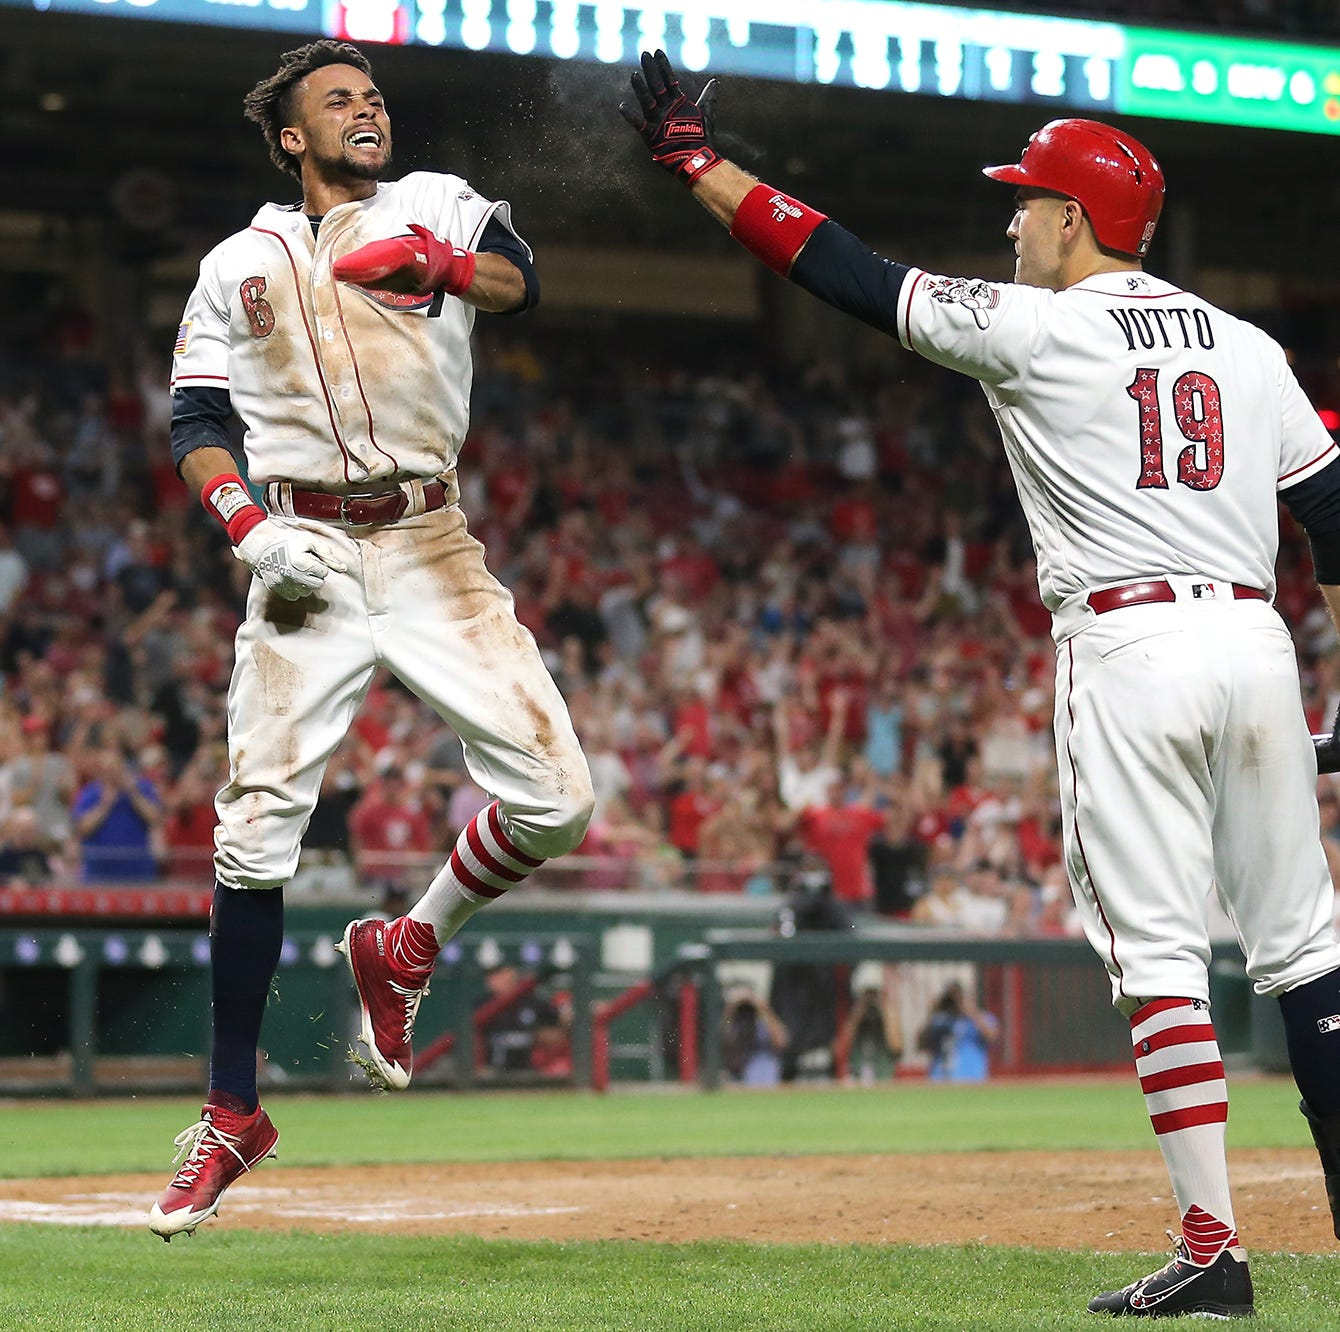 Doc: Billy Hamilton met some of his potential, but not enough